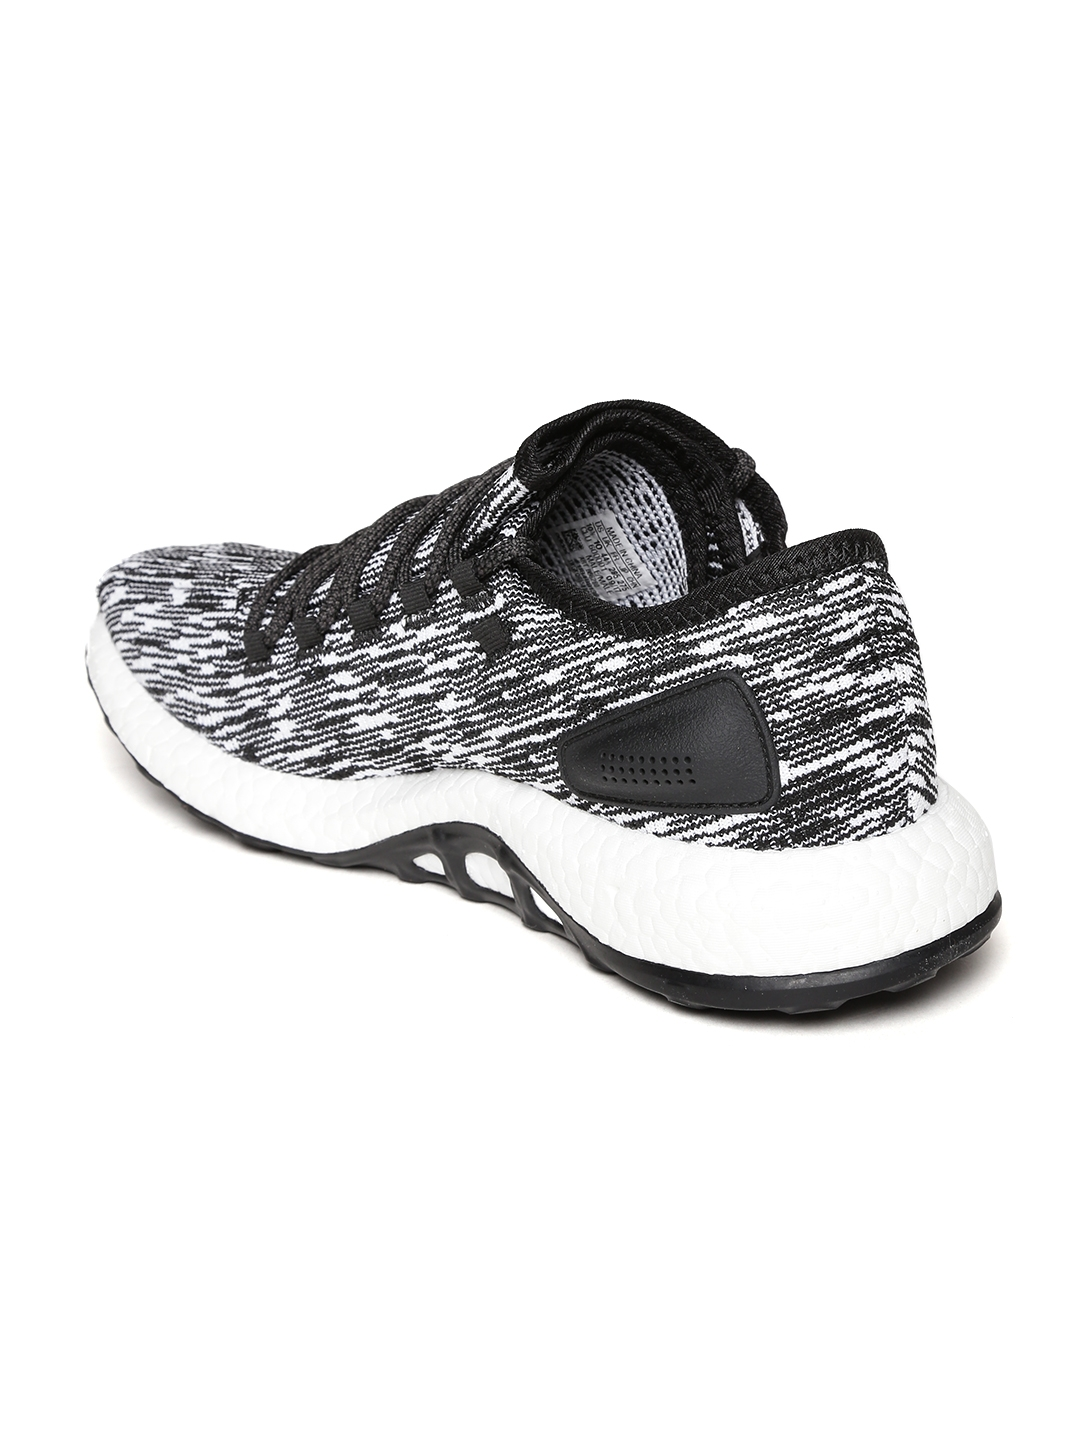 e0ea7391c41cf Buy ADIDAS Men Black   White Pureboost Running Shoes - Sports Shoes ...